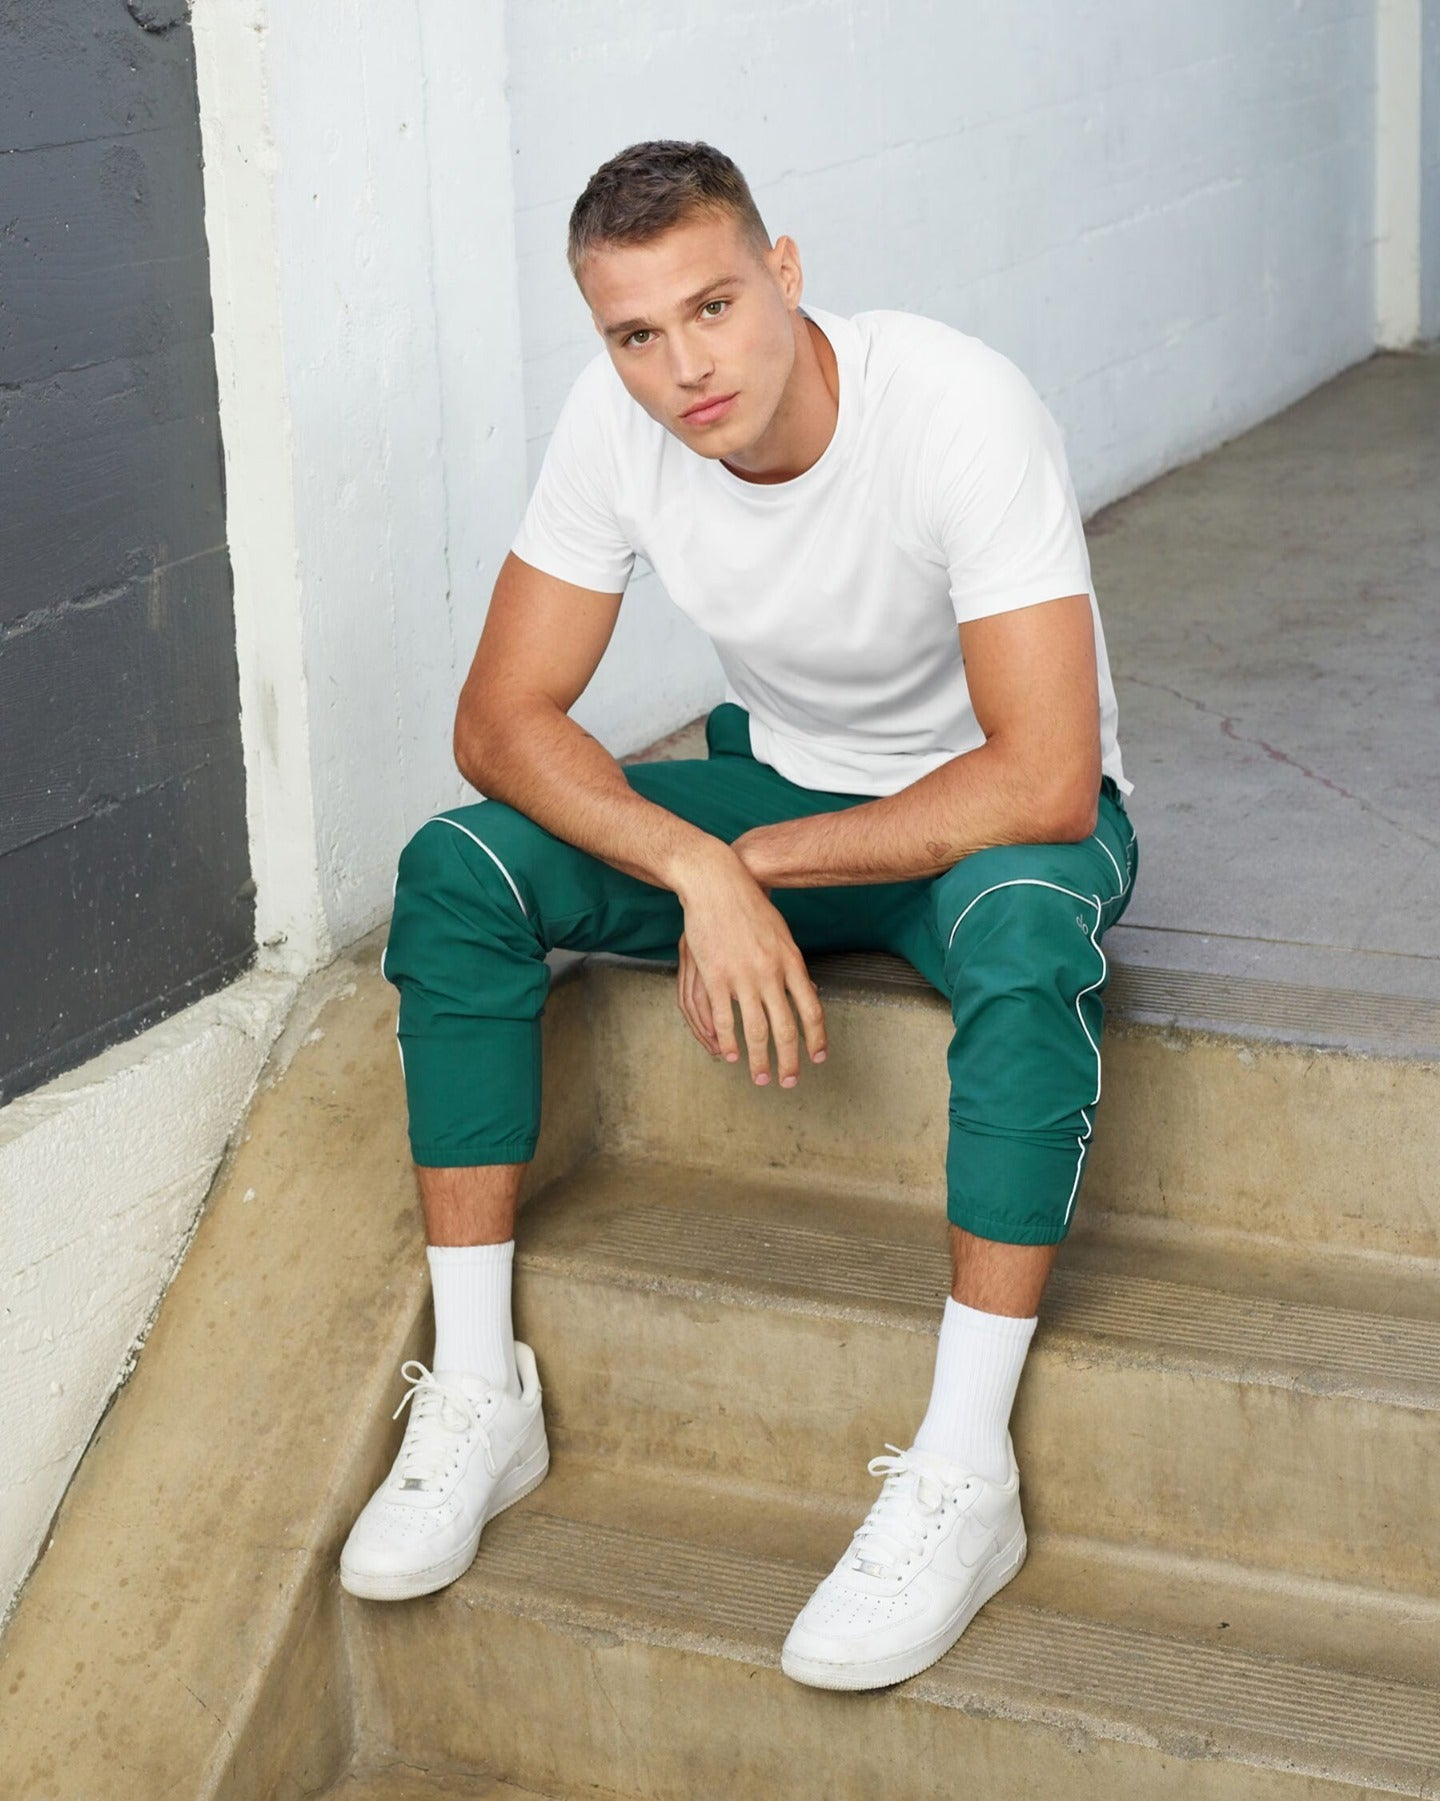 A man wearing the Torrent Track Sweatpant in Baltic green and Triumph Crew Neck Tee in White for a casual-cool street outfit